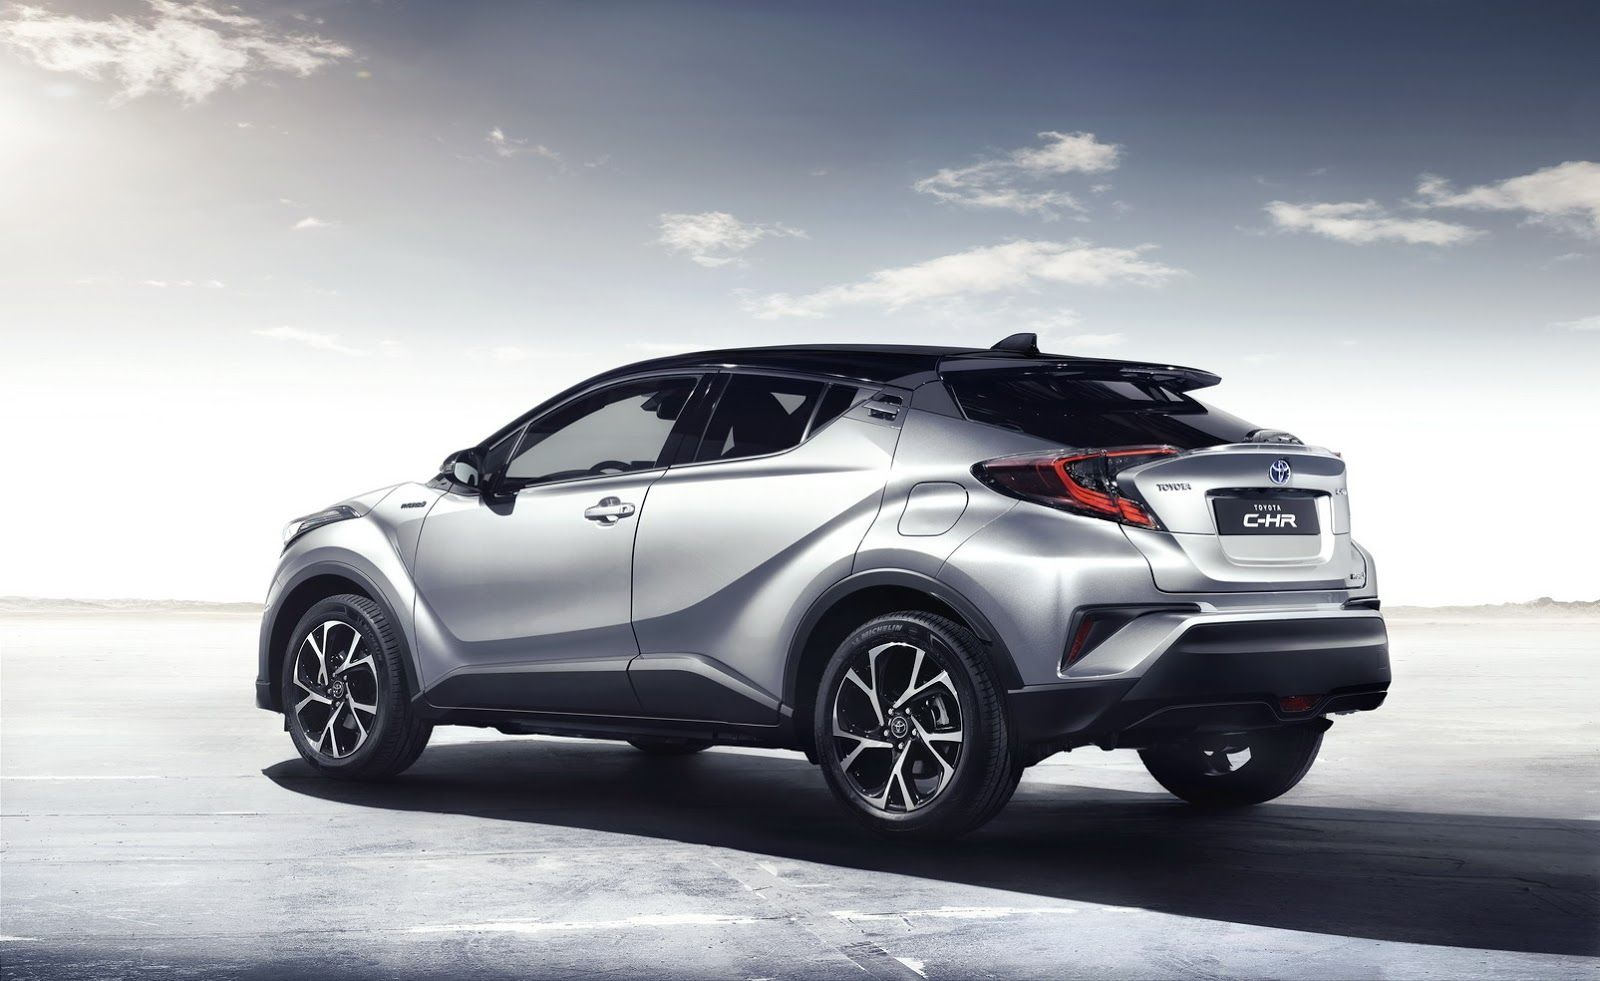 Car seating capacity compact crossover cars toyota cars toyota chr - Cars Toyota Chr 2